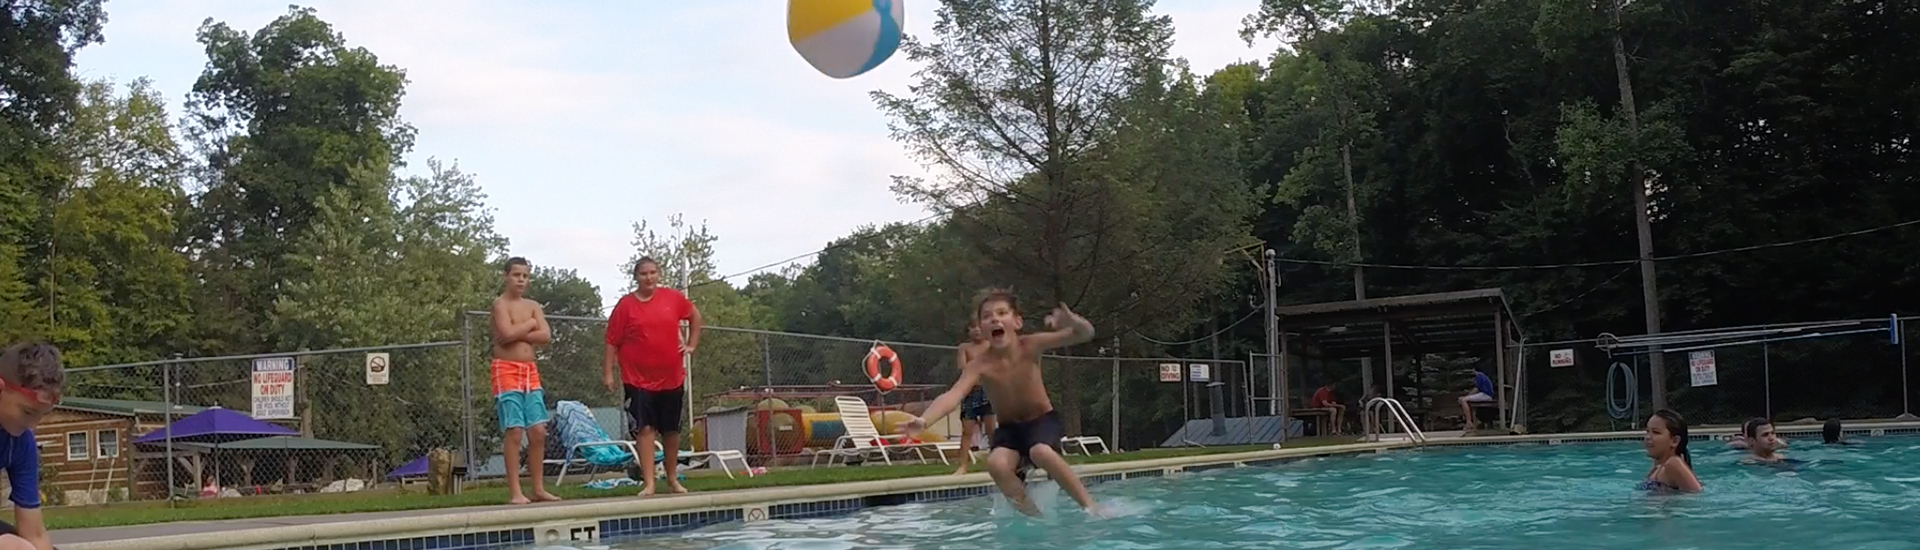 Kid jumping into swimming pool.